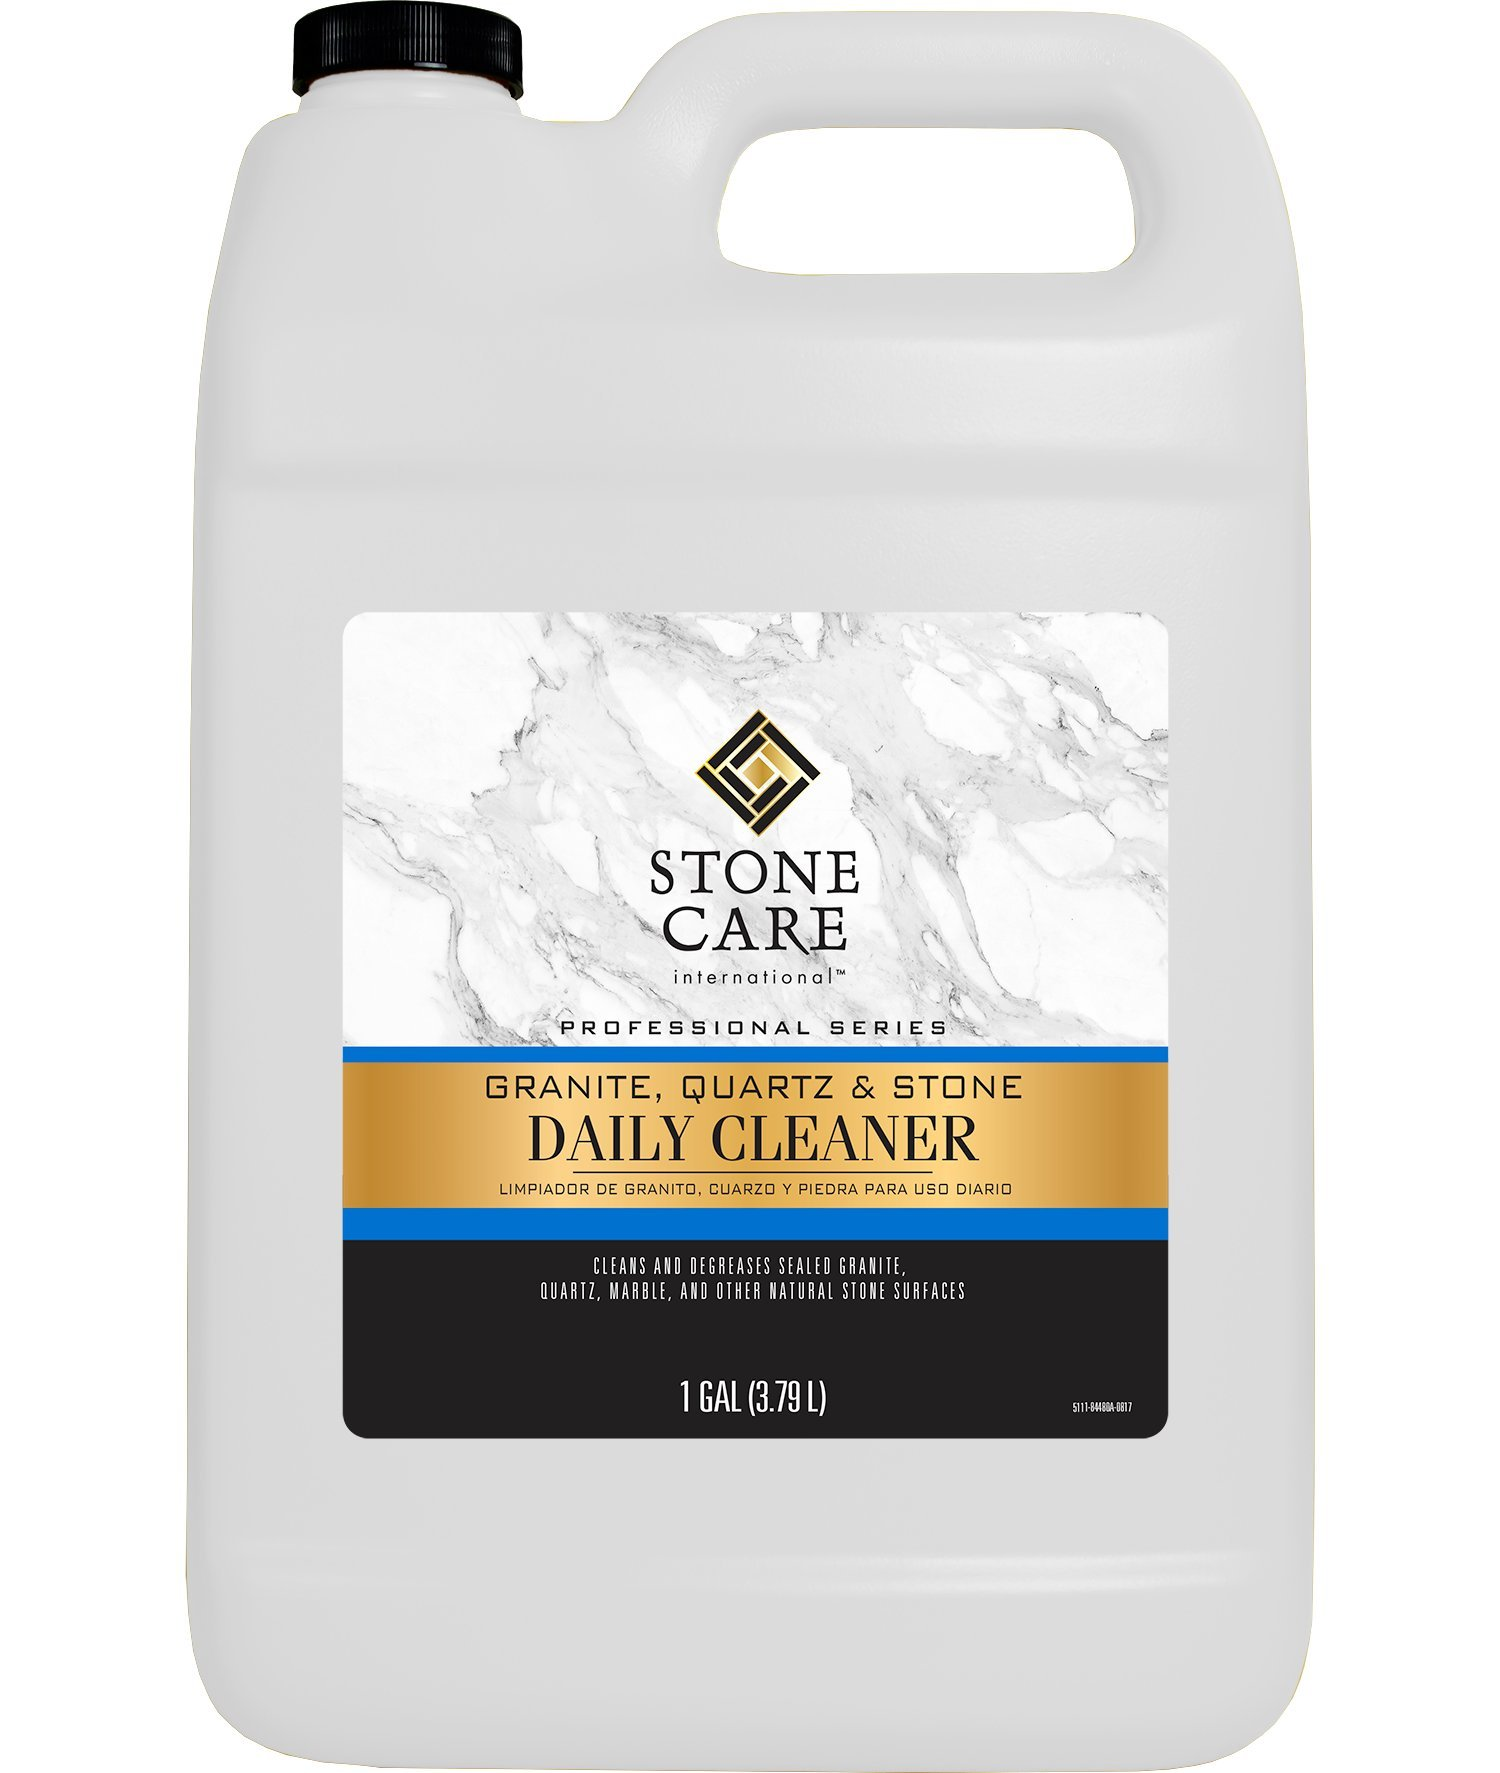 Stone Care International [1 Gallon] Granite Quartz Stone Daily Cleaner - Clean and De-Grease Natural Stones with Streak Free Finish - 1 Gallon by Weiman